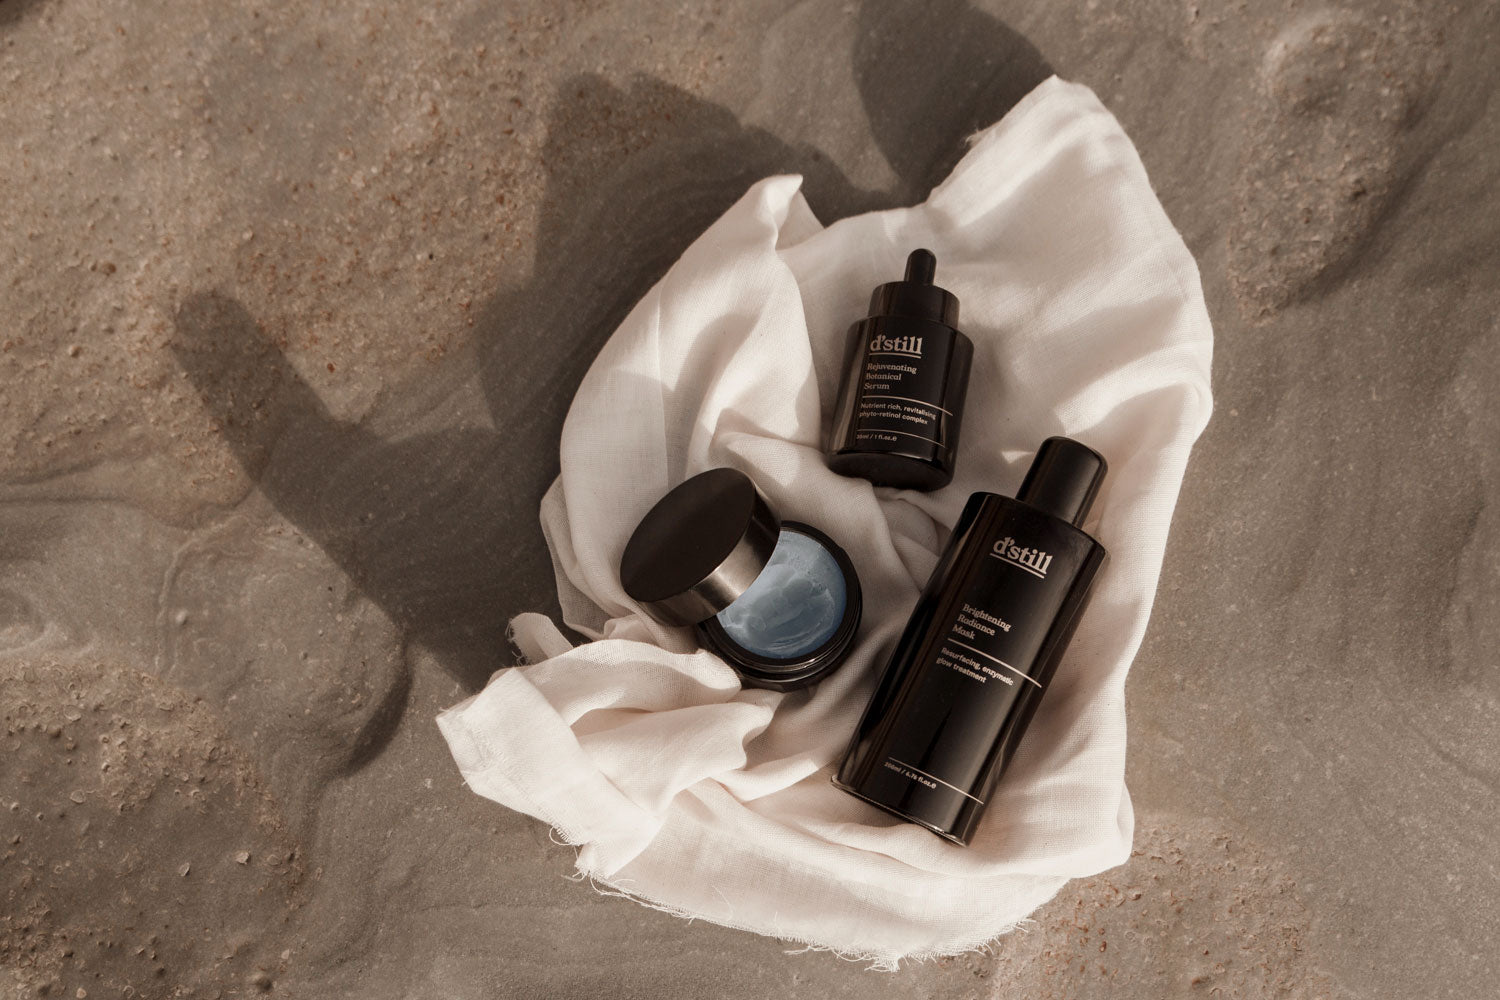 D'still Beauty high-performance skincare made in England